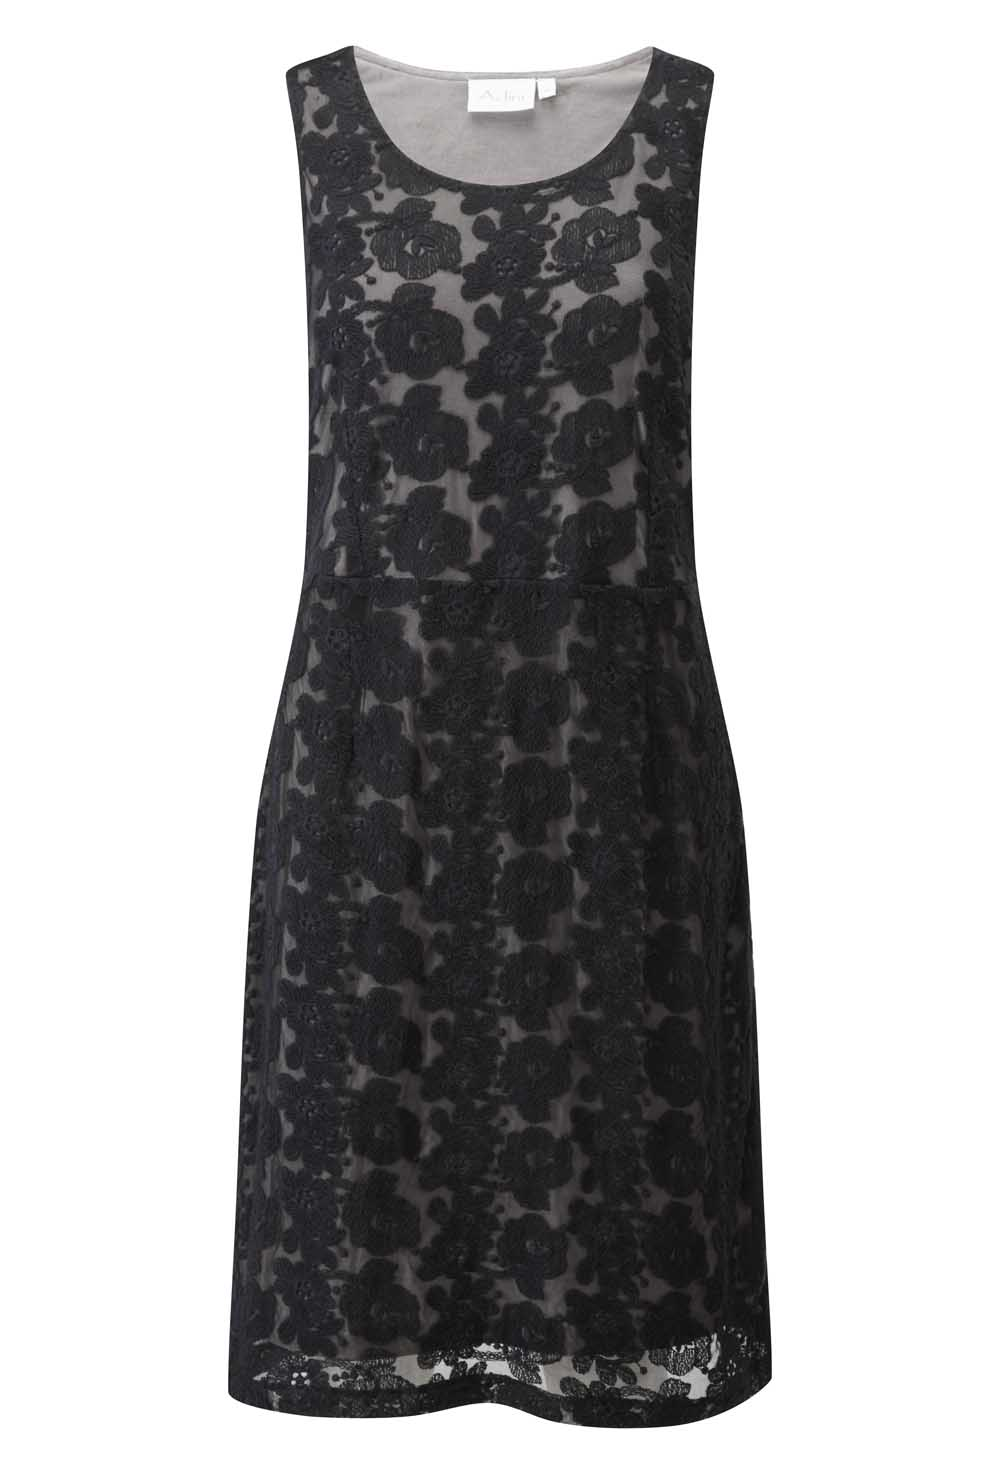 LAVINIA MLC4040 AW14 BLACK1 Ethical Fashion for Autumn   My Top 10 Dresses